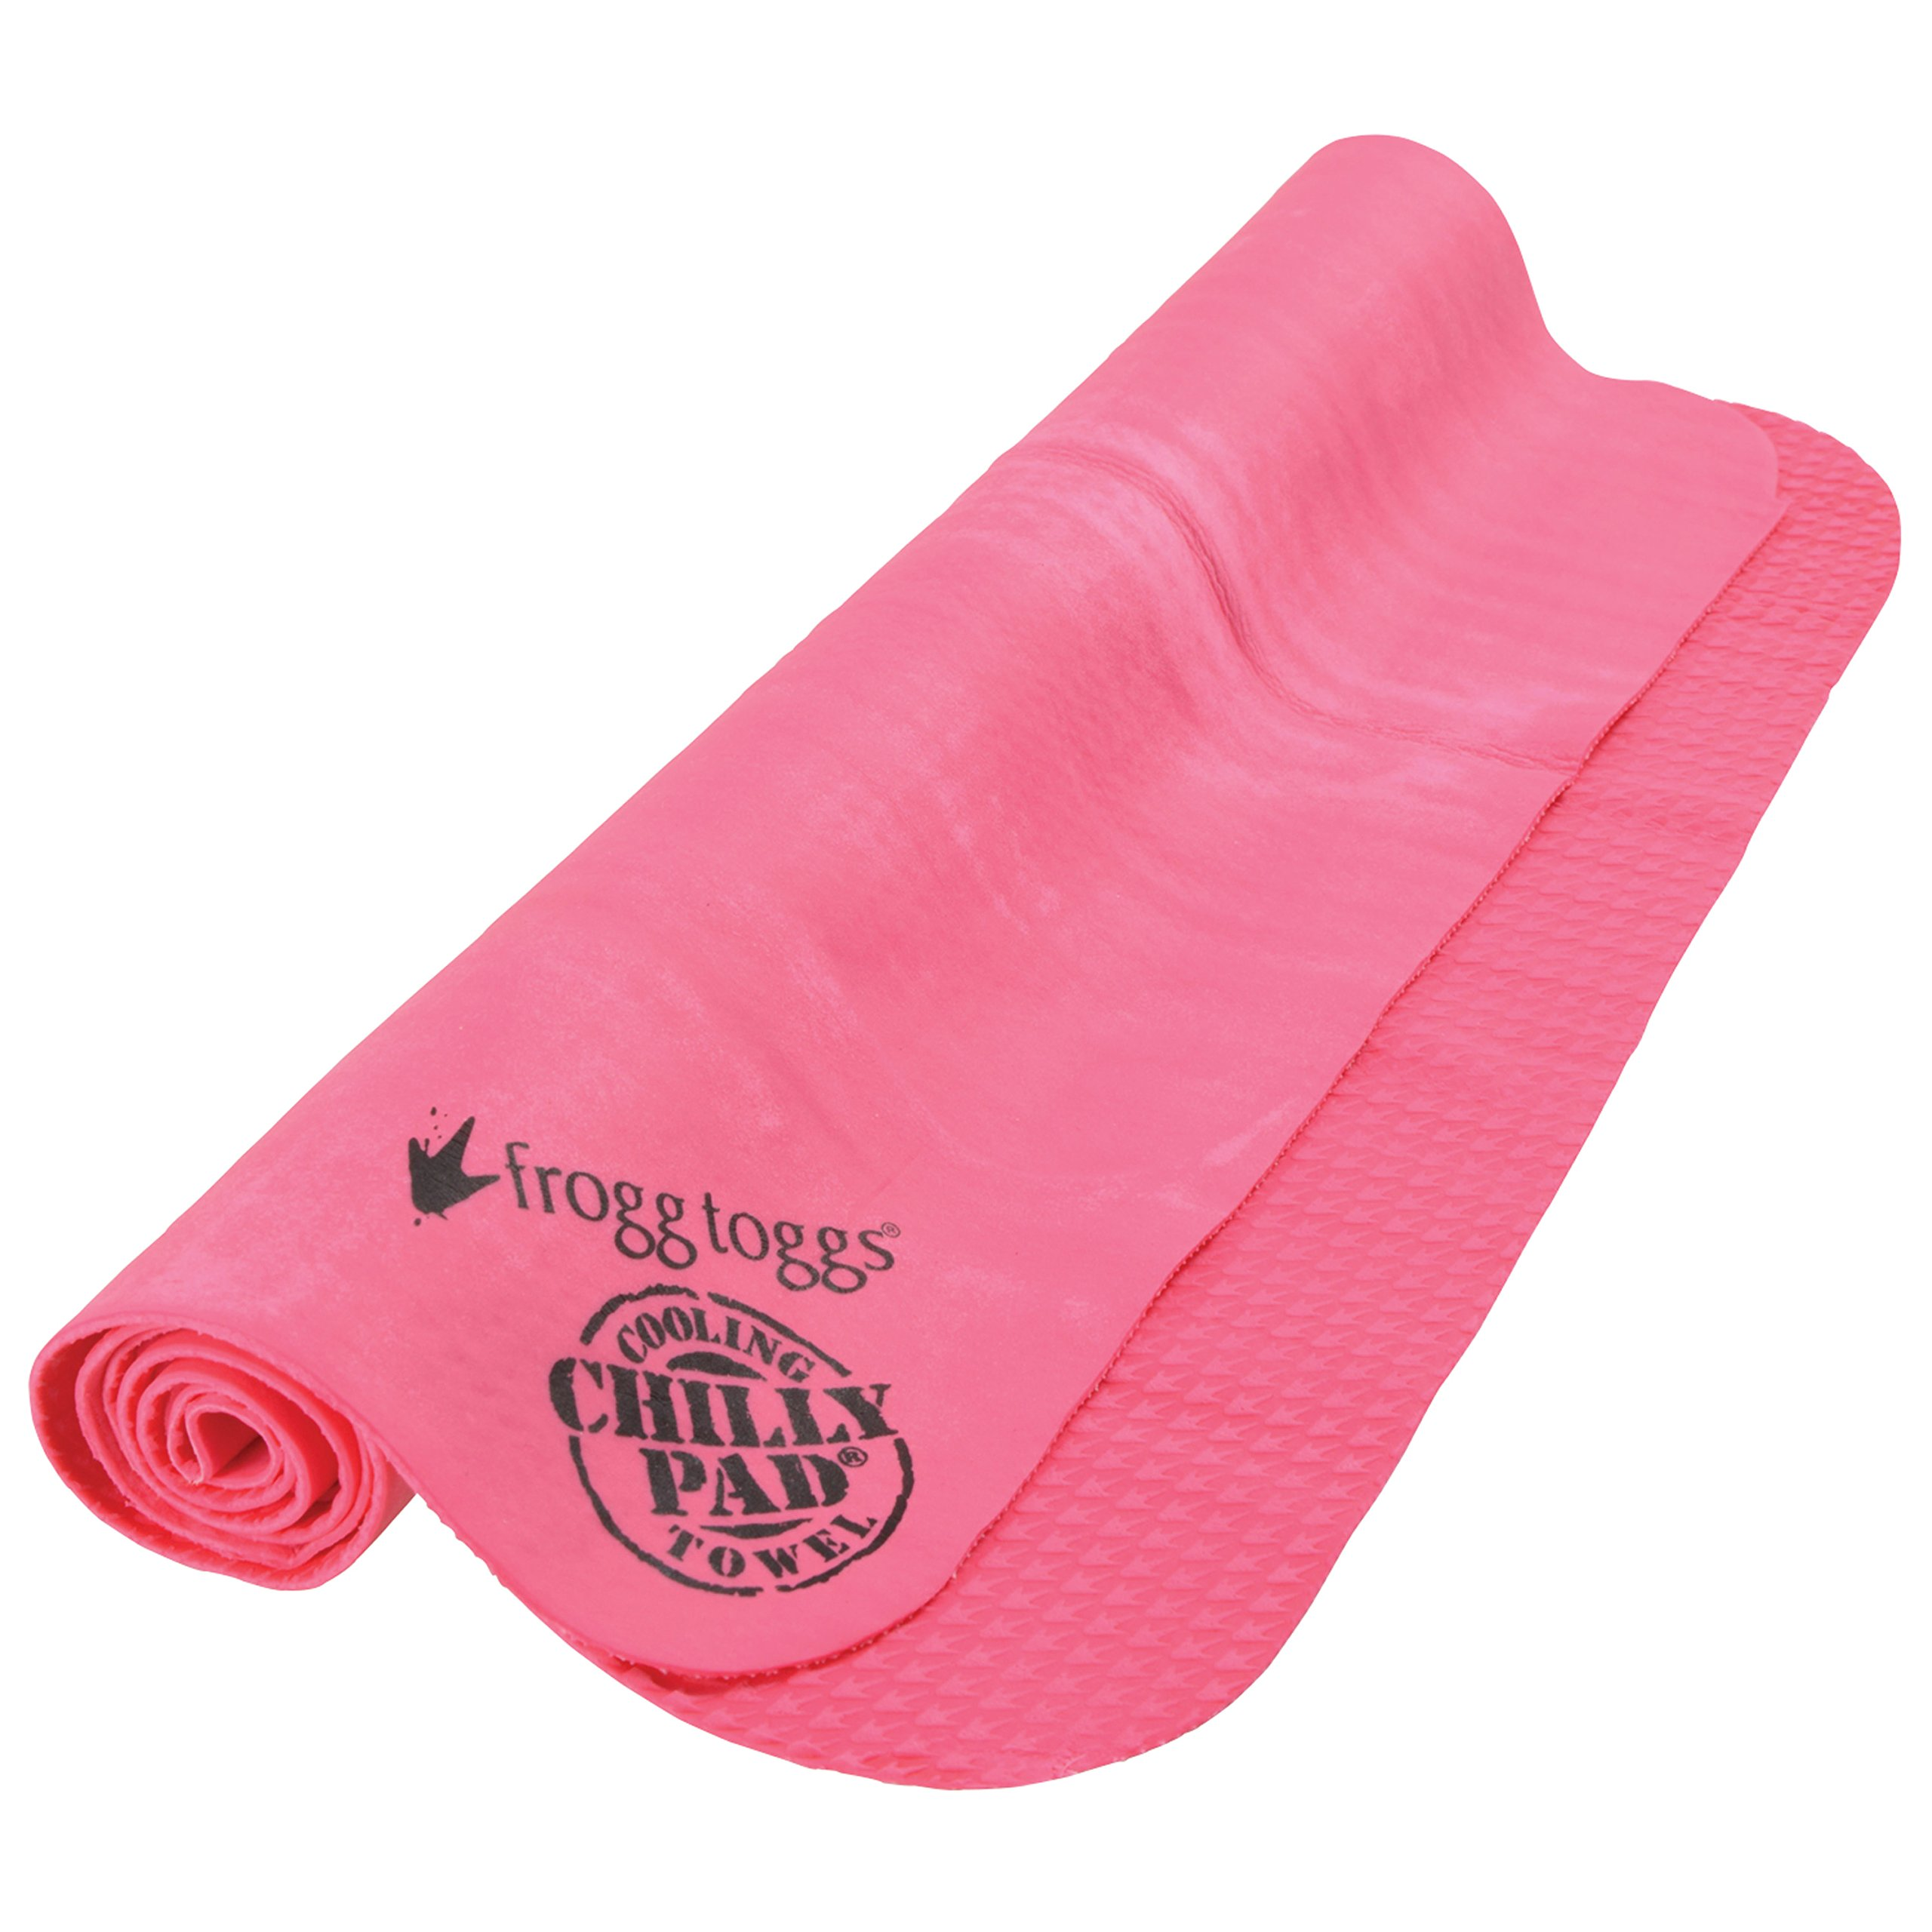 Frogg Toggs Chilly Pad Cooling Towel, Hot Pink, Size 33'' x 13''